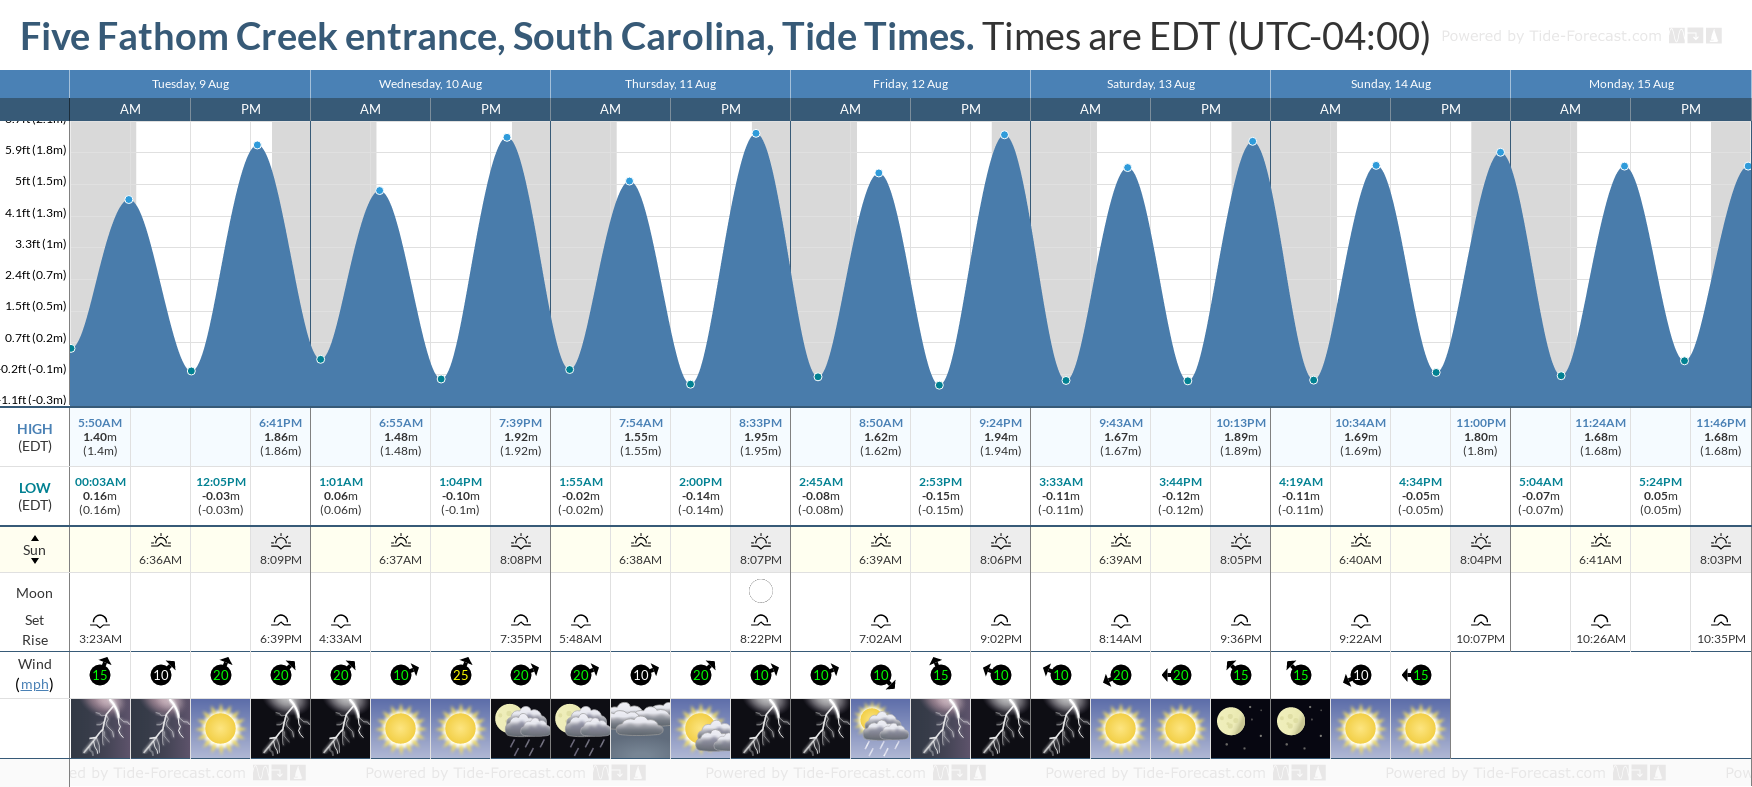 Five Fathom Creek entrance, South Carolina Tide Chart including high and low tide tide times for the next 7 days